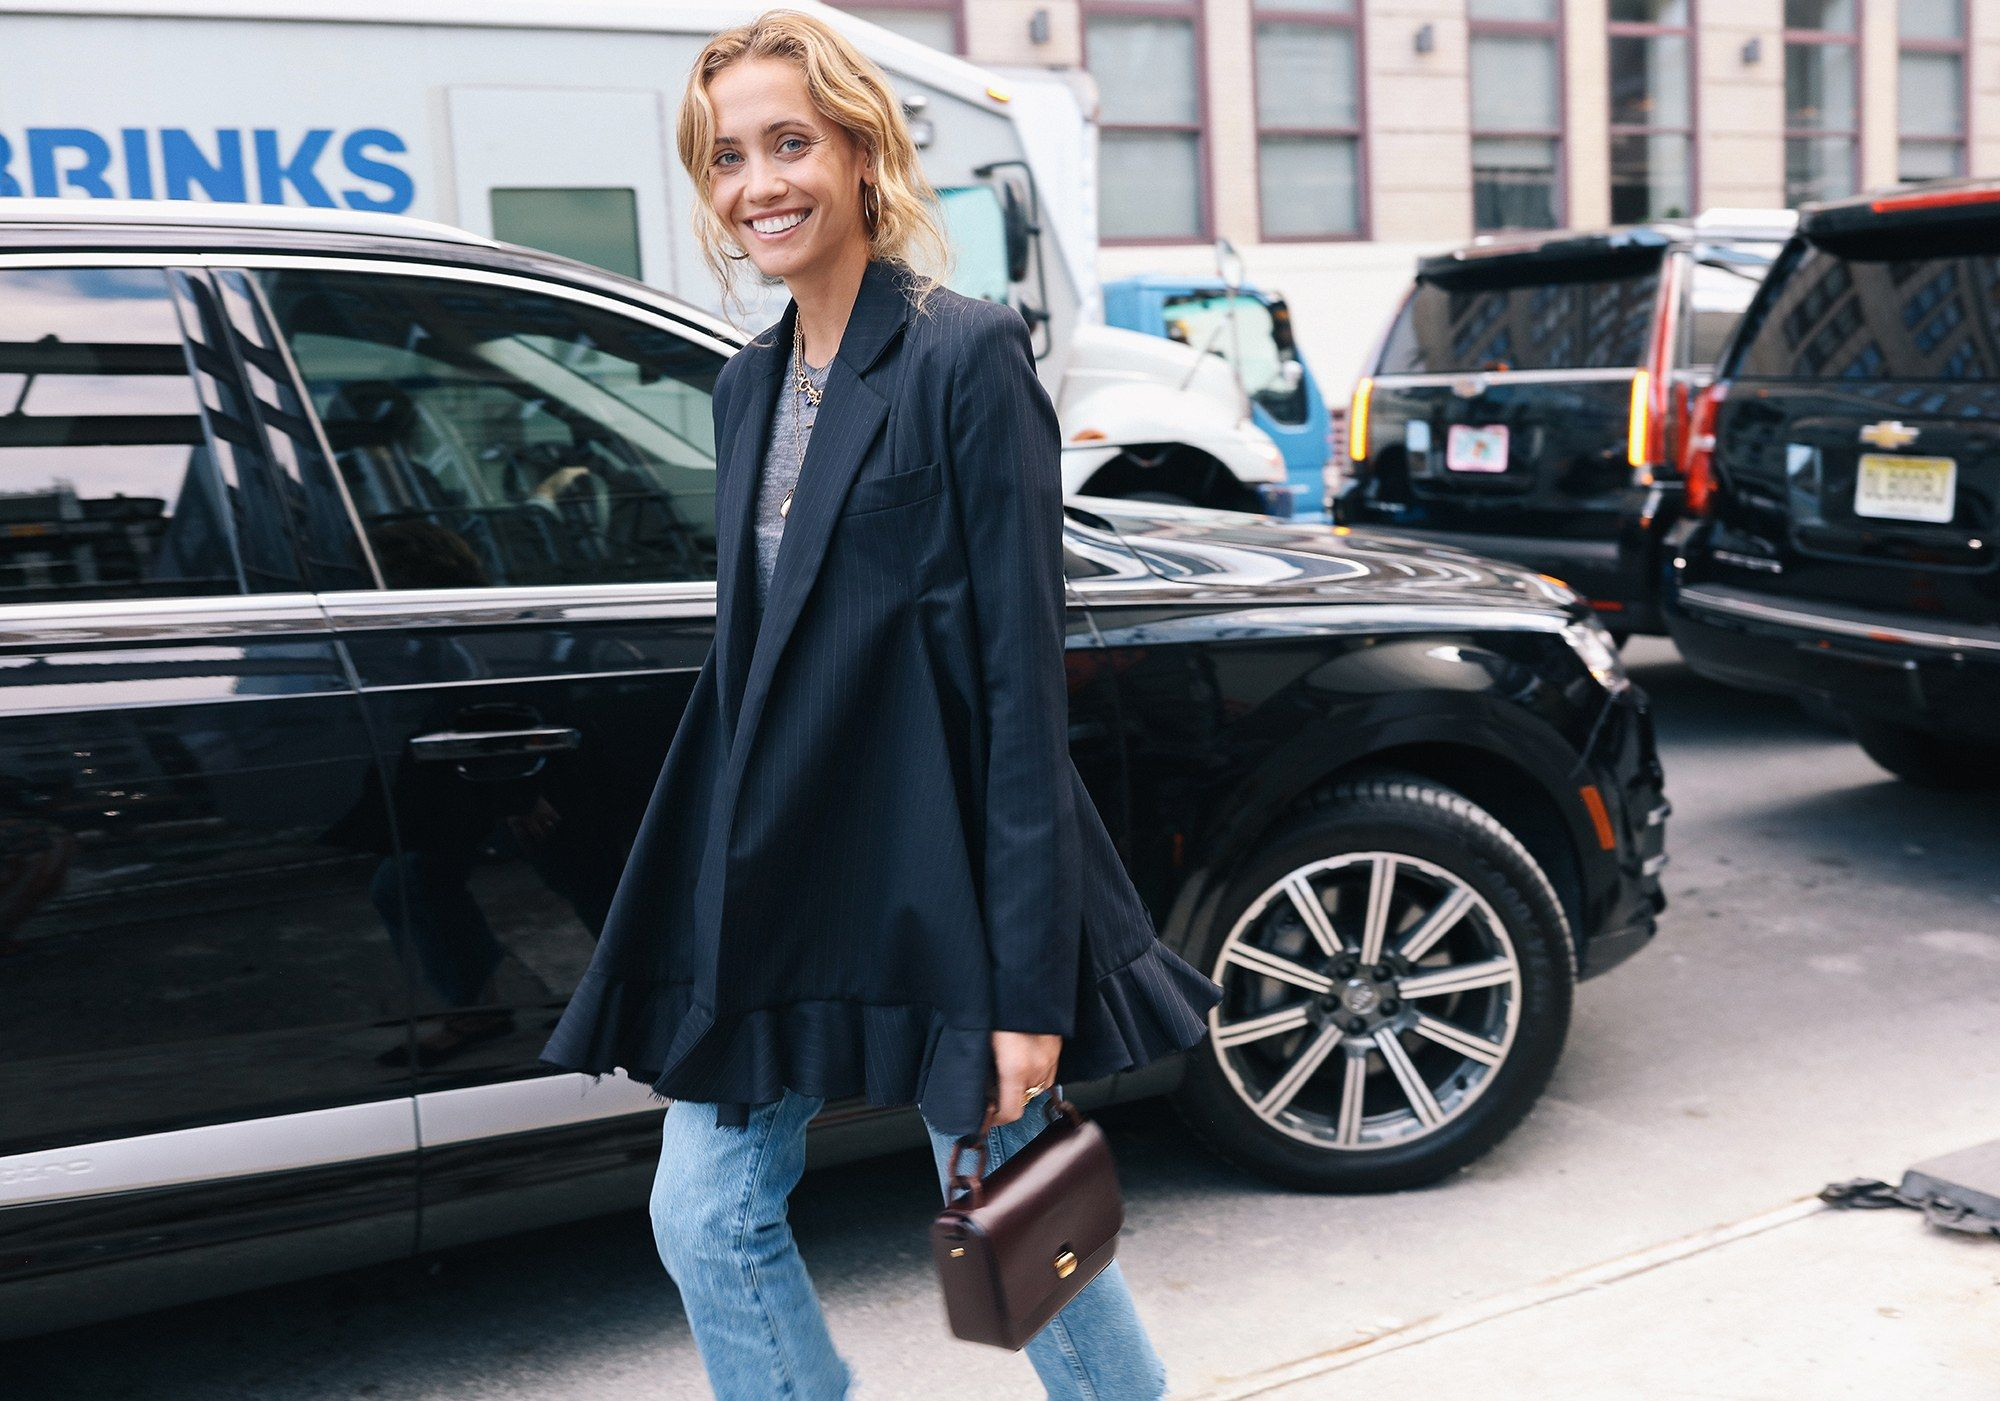 The Best Street Style From New York Fashion Week Spring '18    Laurel Pantin  Photographed by Phil Oh    fashion